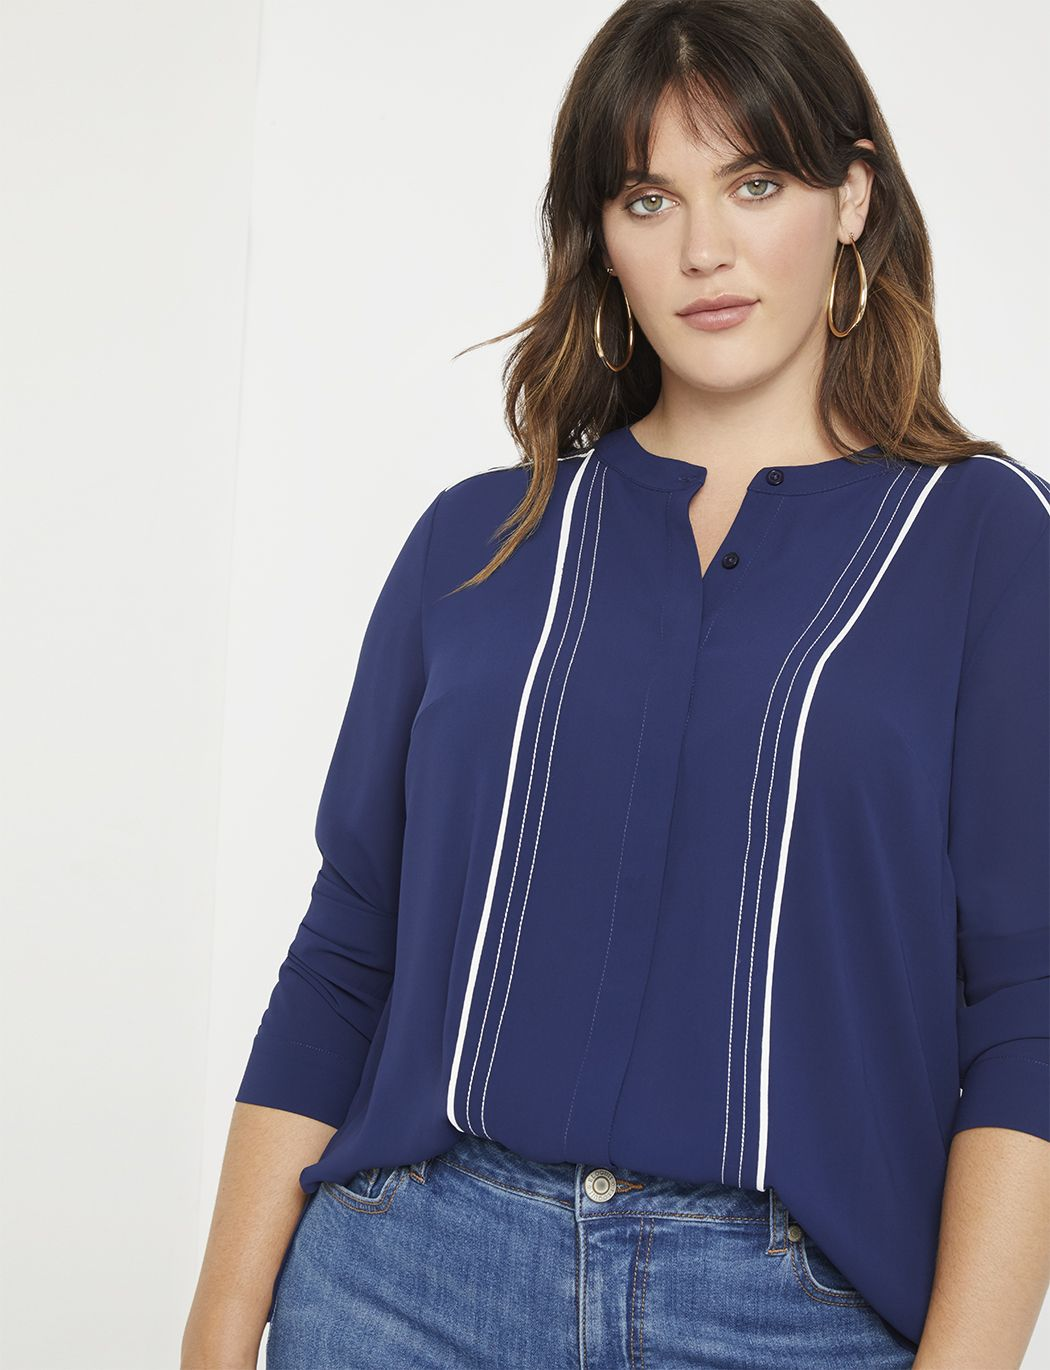 Contrast Piped Blouse | Women's Plus Size Tops | ELOQUII 2